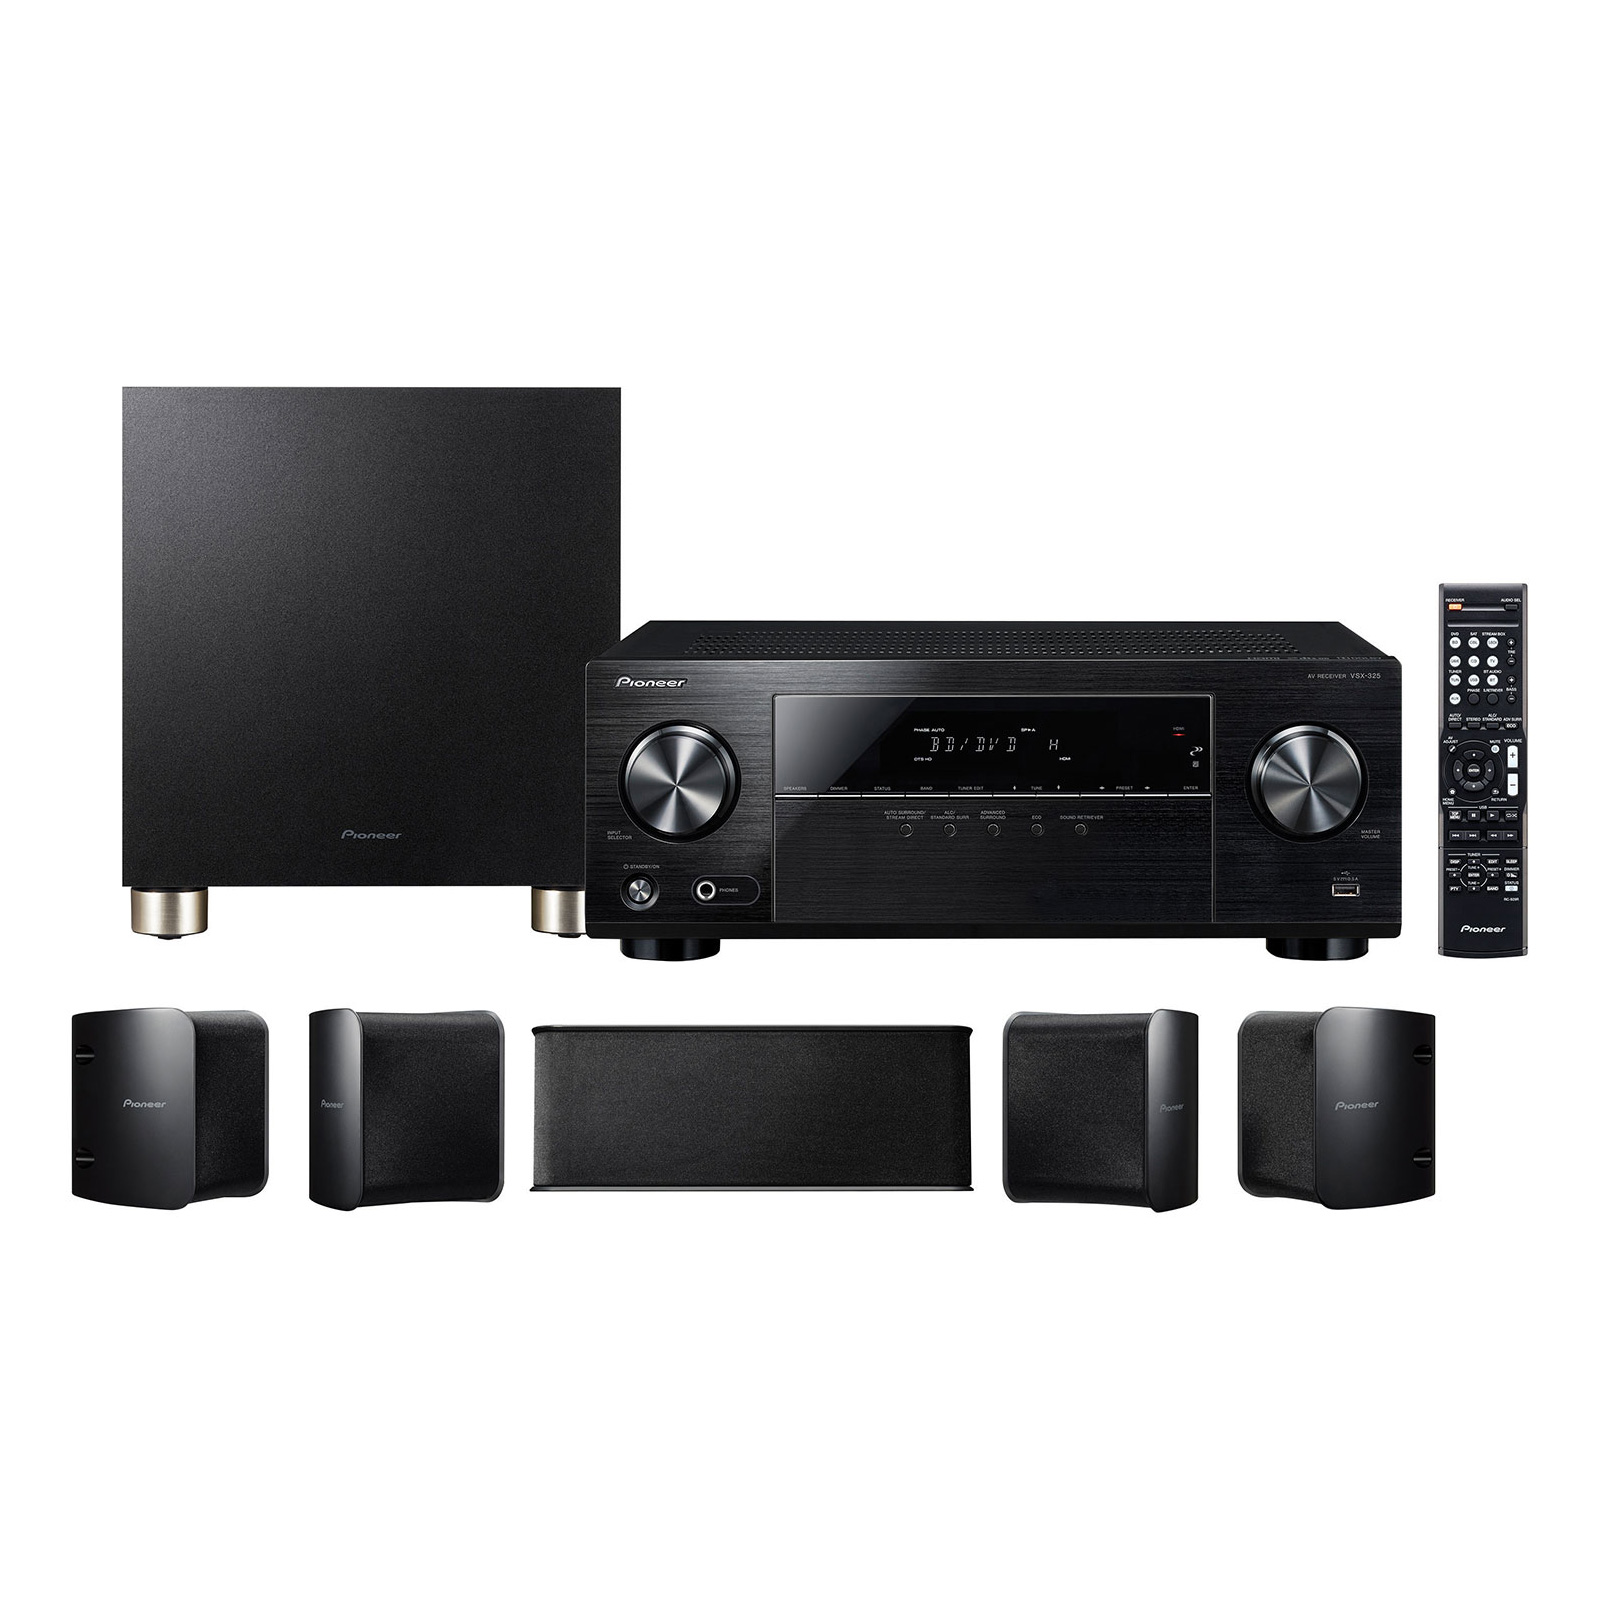 pioneer htp 074 ensemble home cinema 5 1 600w 4k uhd 3d comparer avec. Black Bedroom Furniture Sets. Home Design Ideas